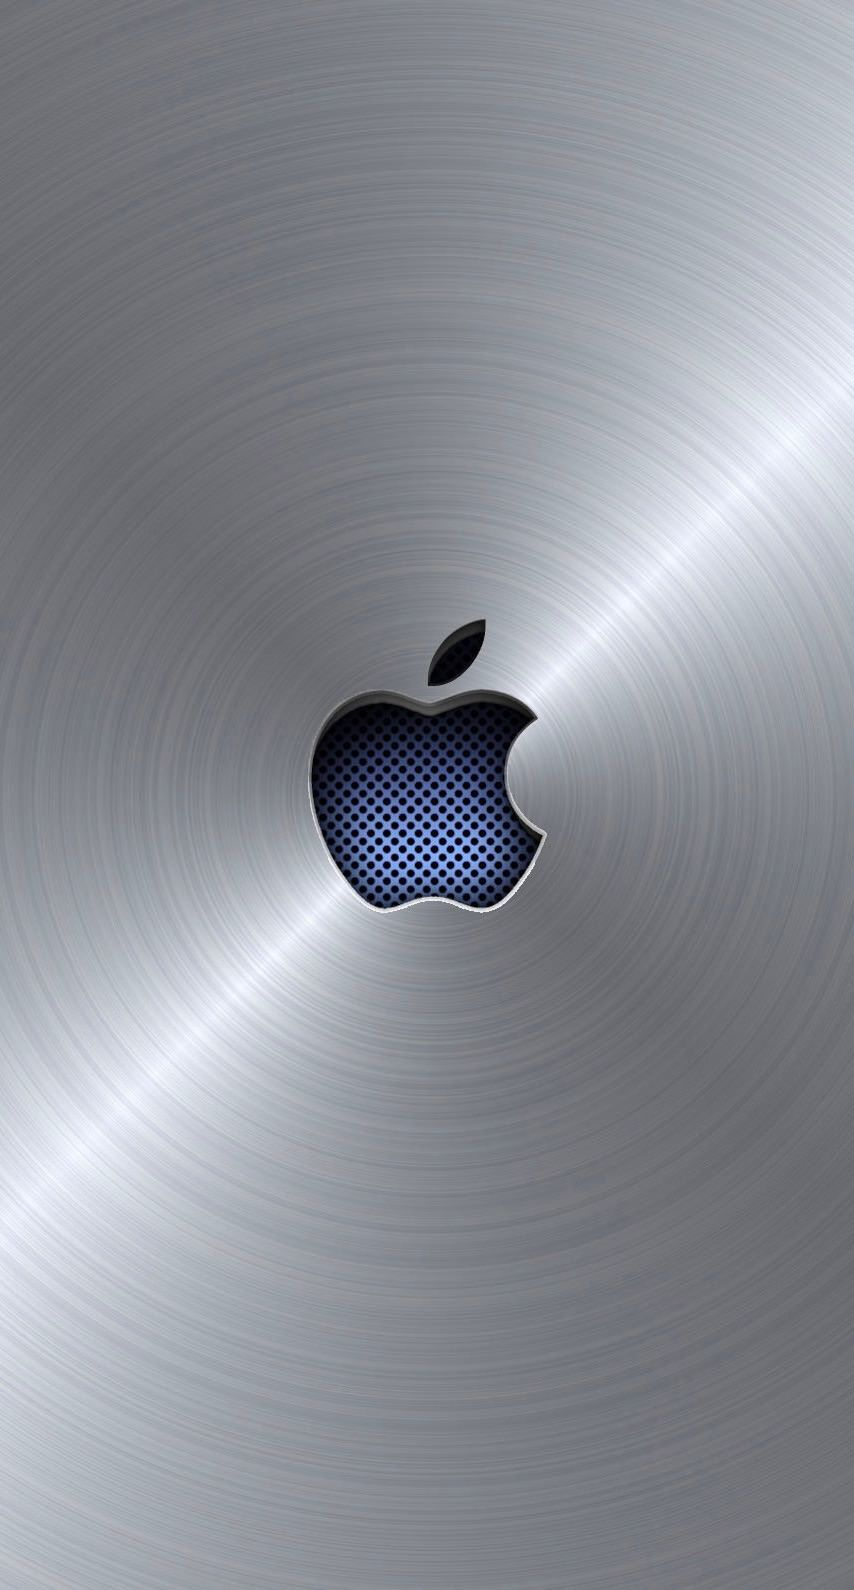 Apple logo cool blue silver wallpaper.sc iPhone6s